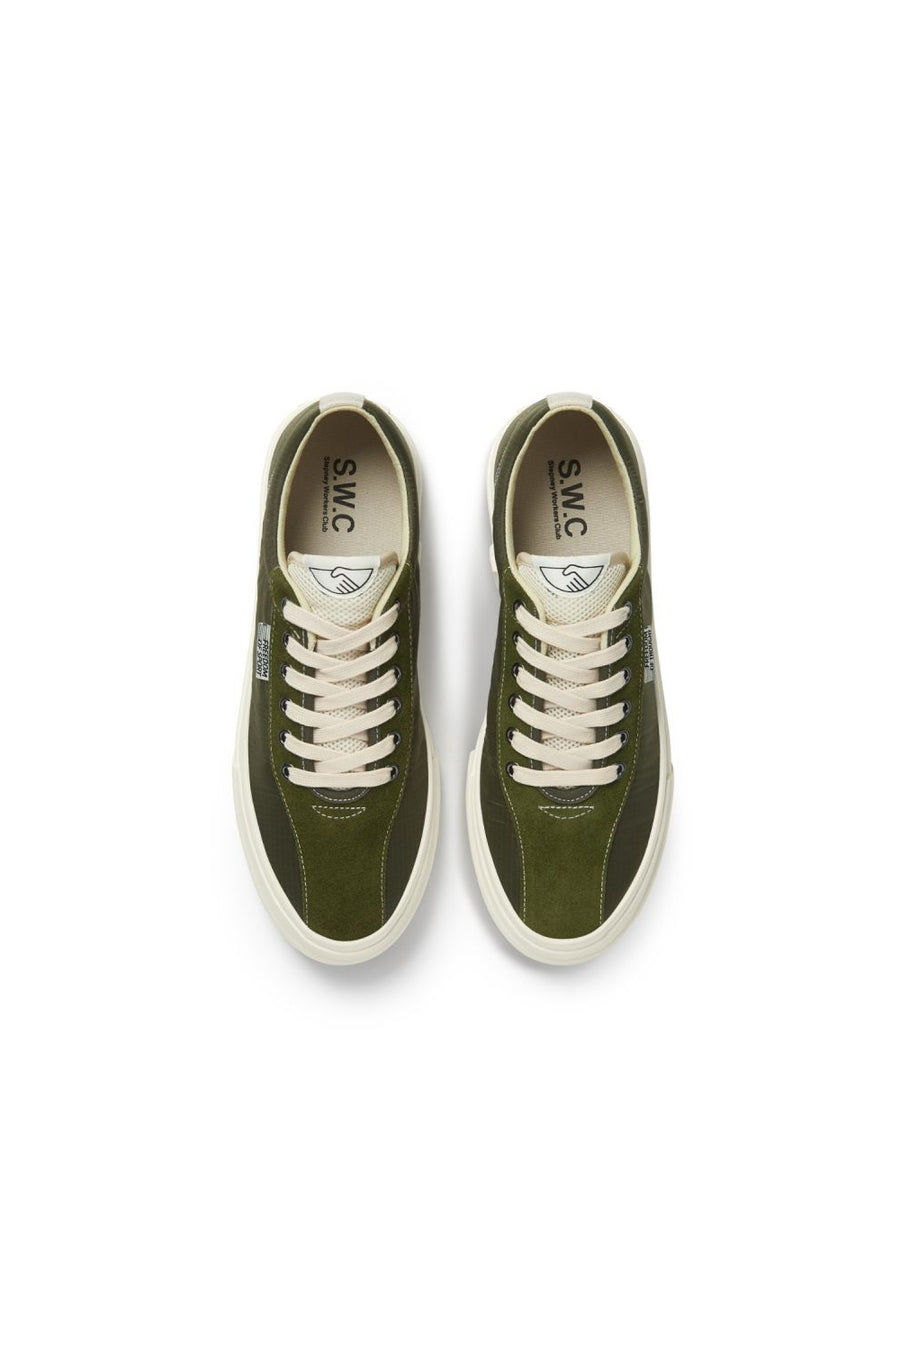 Dellow Track Nylon | Olive | footwear NZ | STEPNEY WORKERS CLUB NZ | Black Box Boutique Auckland | Womens Fashion NZ